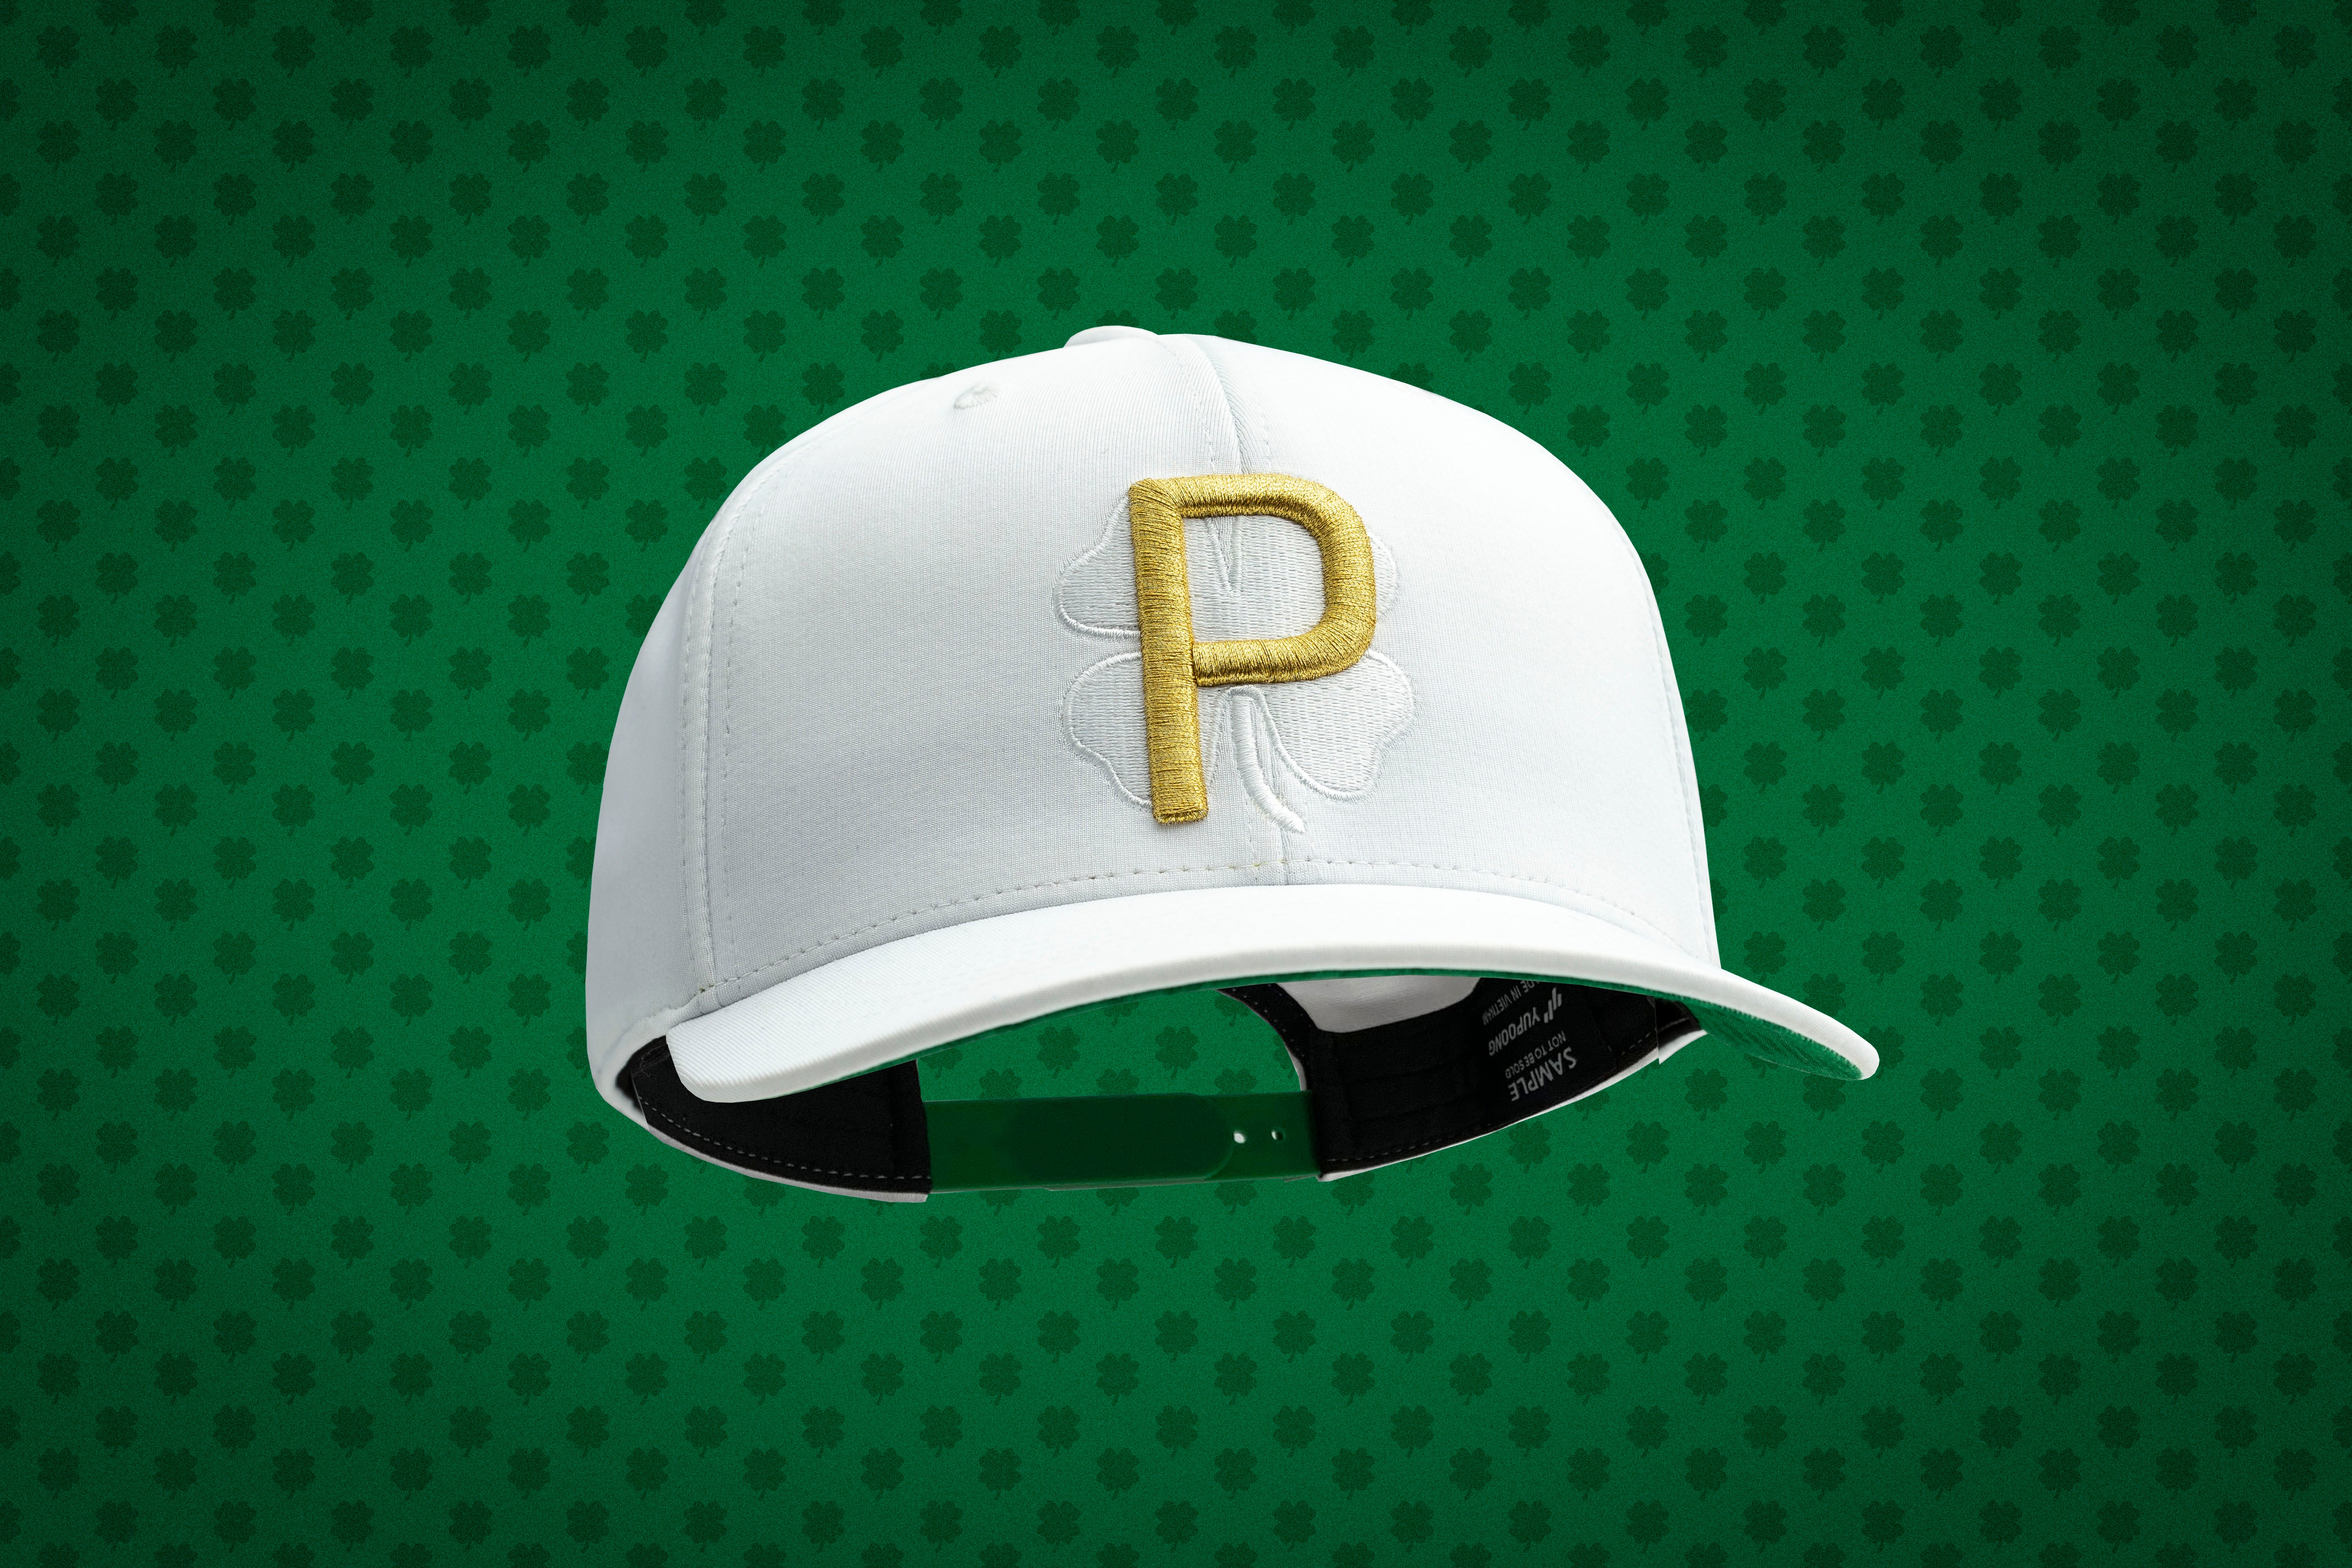 A closer look at Rickie Fowler's special edition St. Patrick's Day hat.